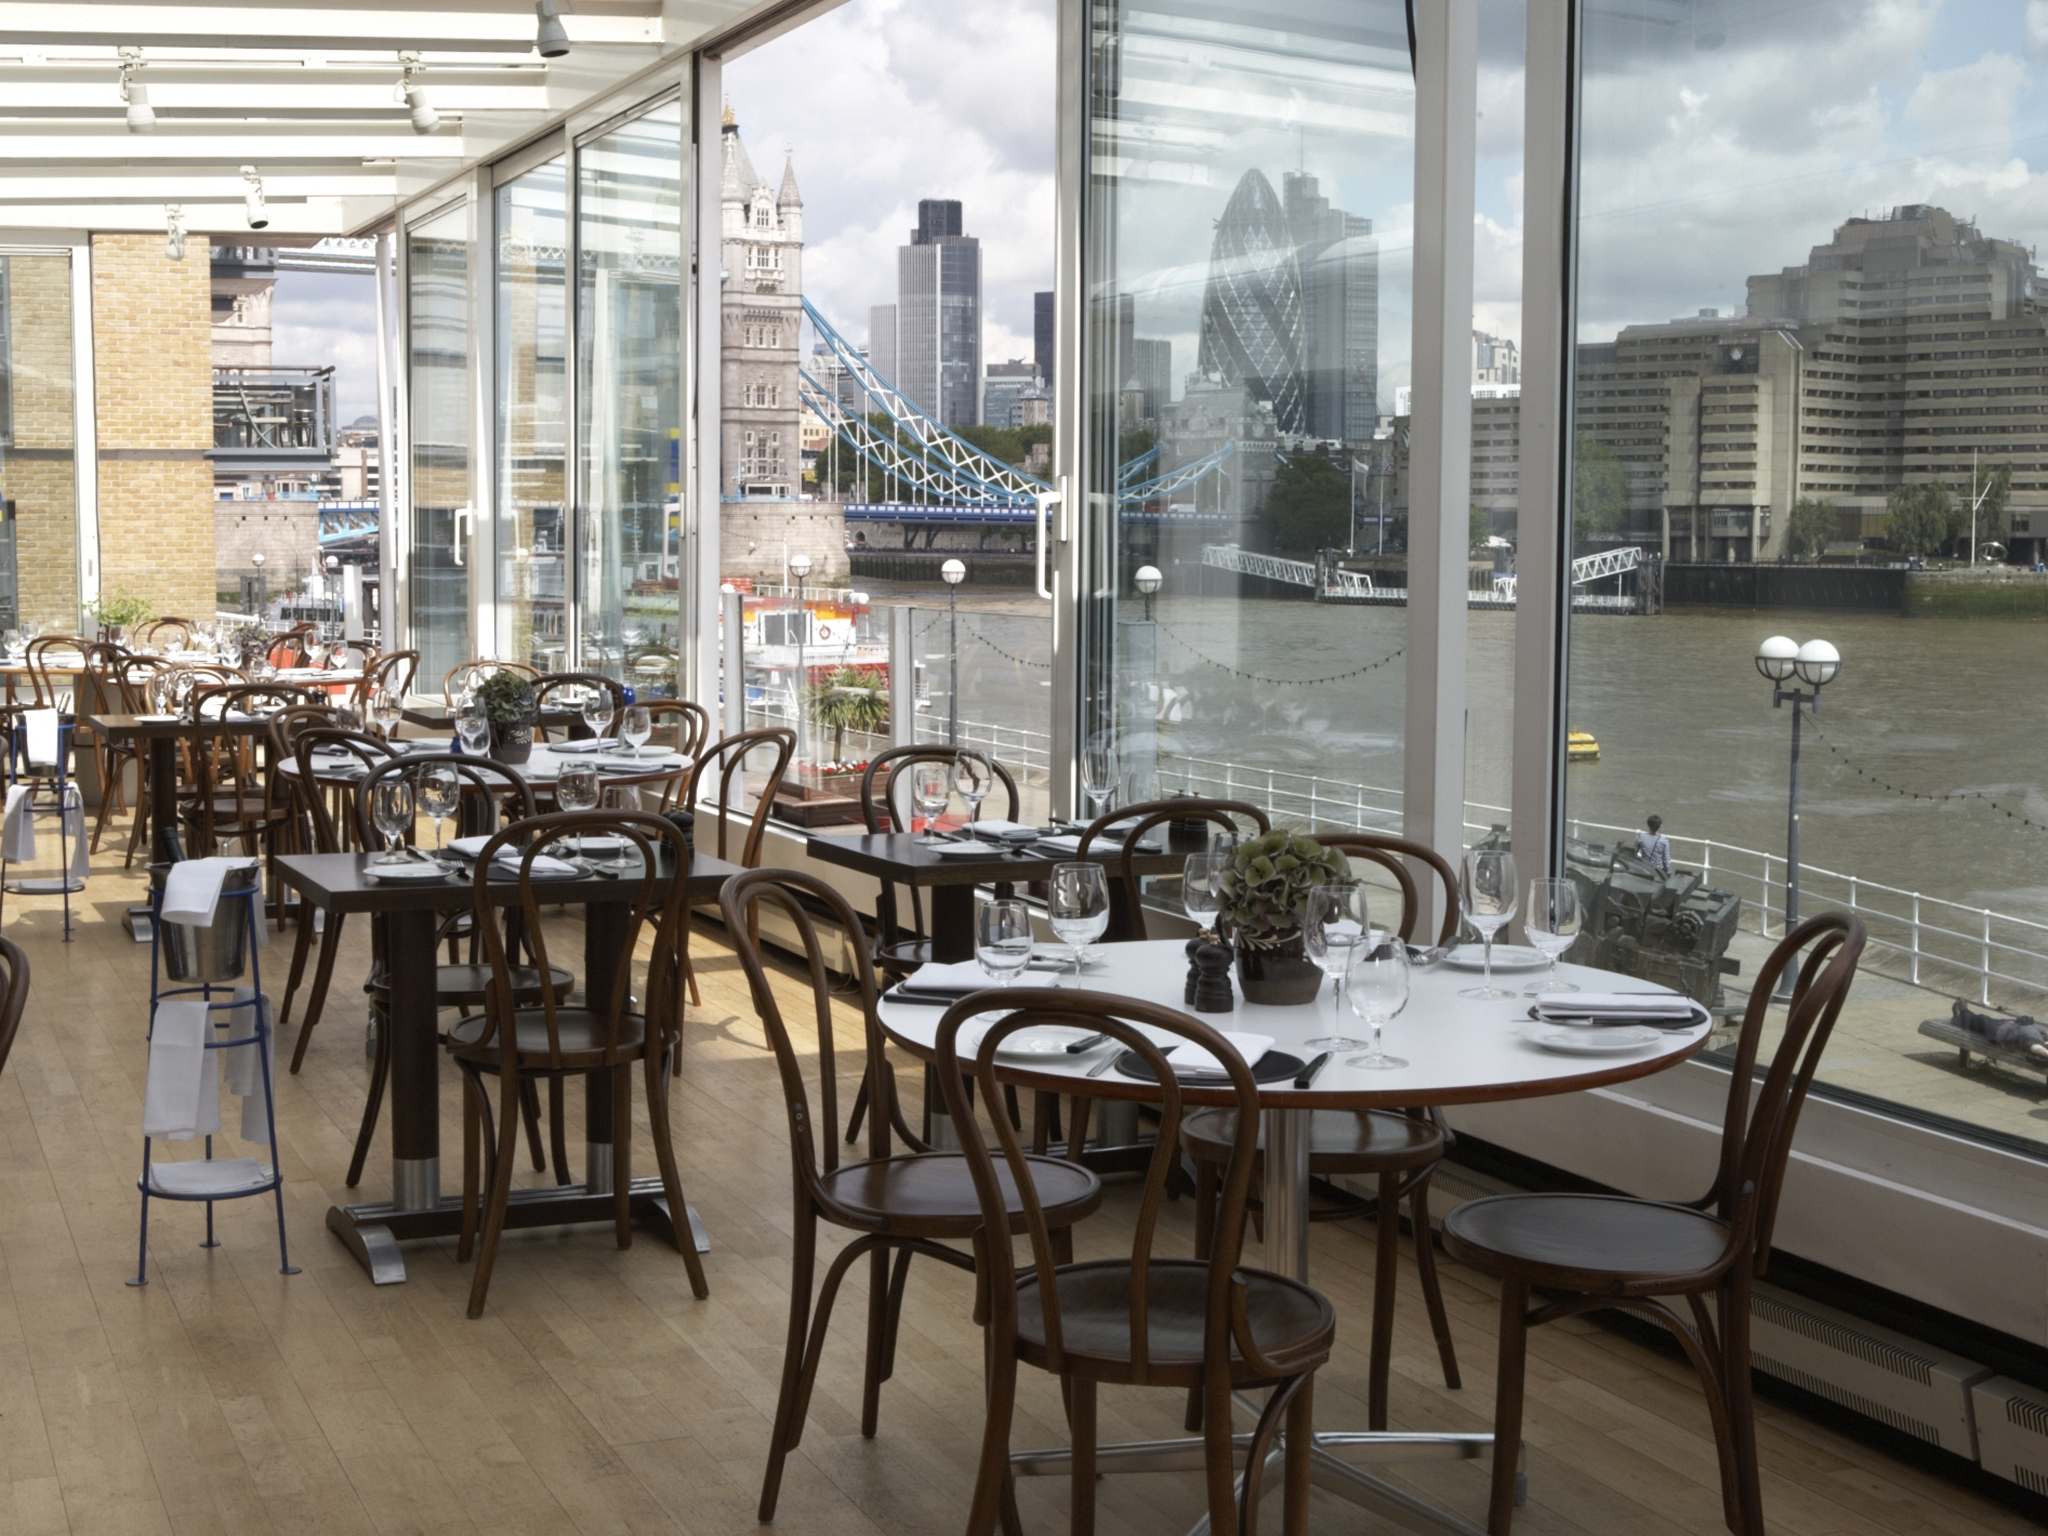 Restaurants with the best views in london time out london blueprint caf malvernweather Choice Image